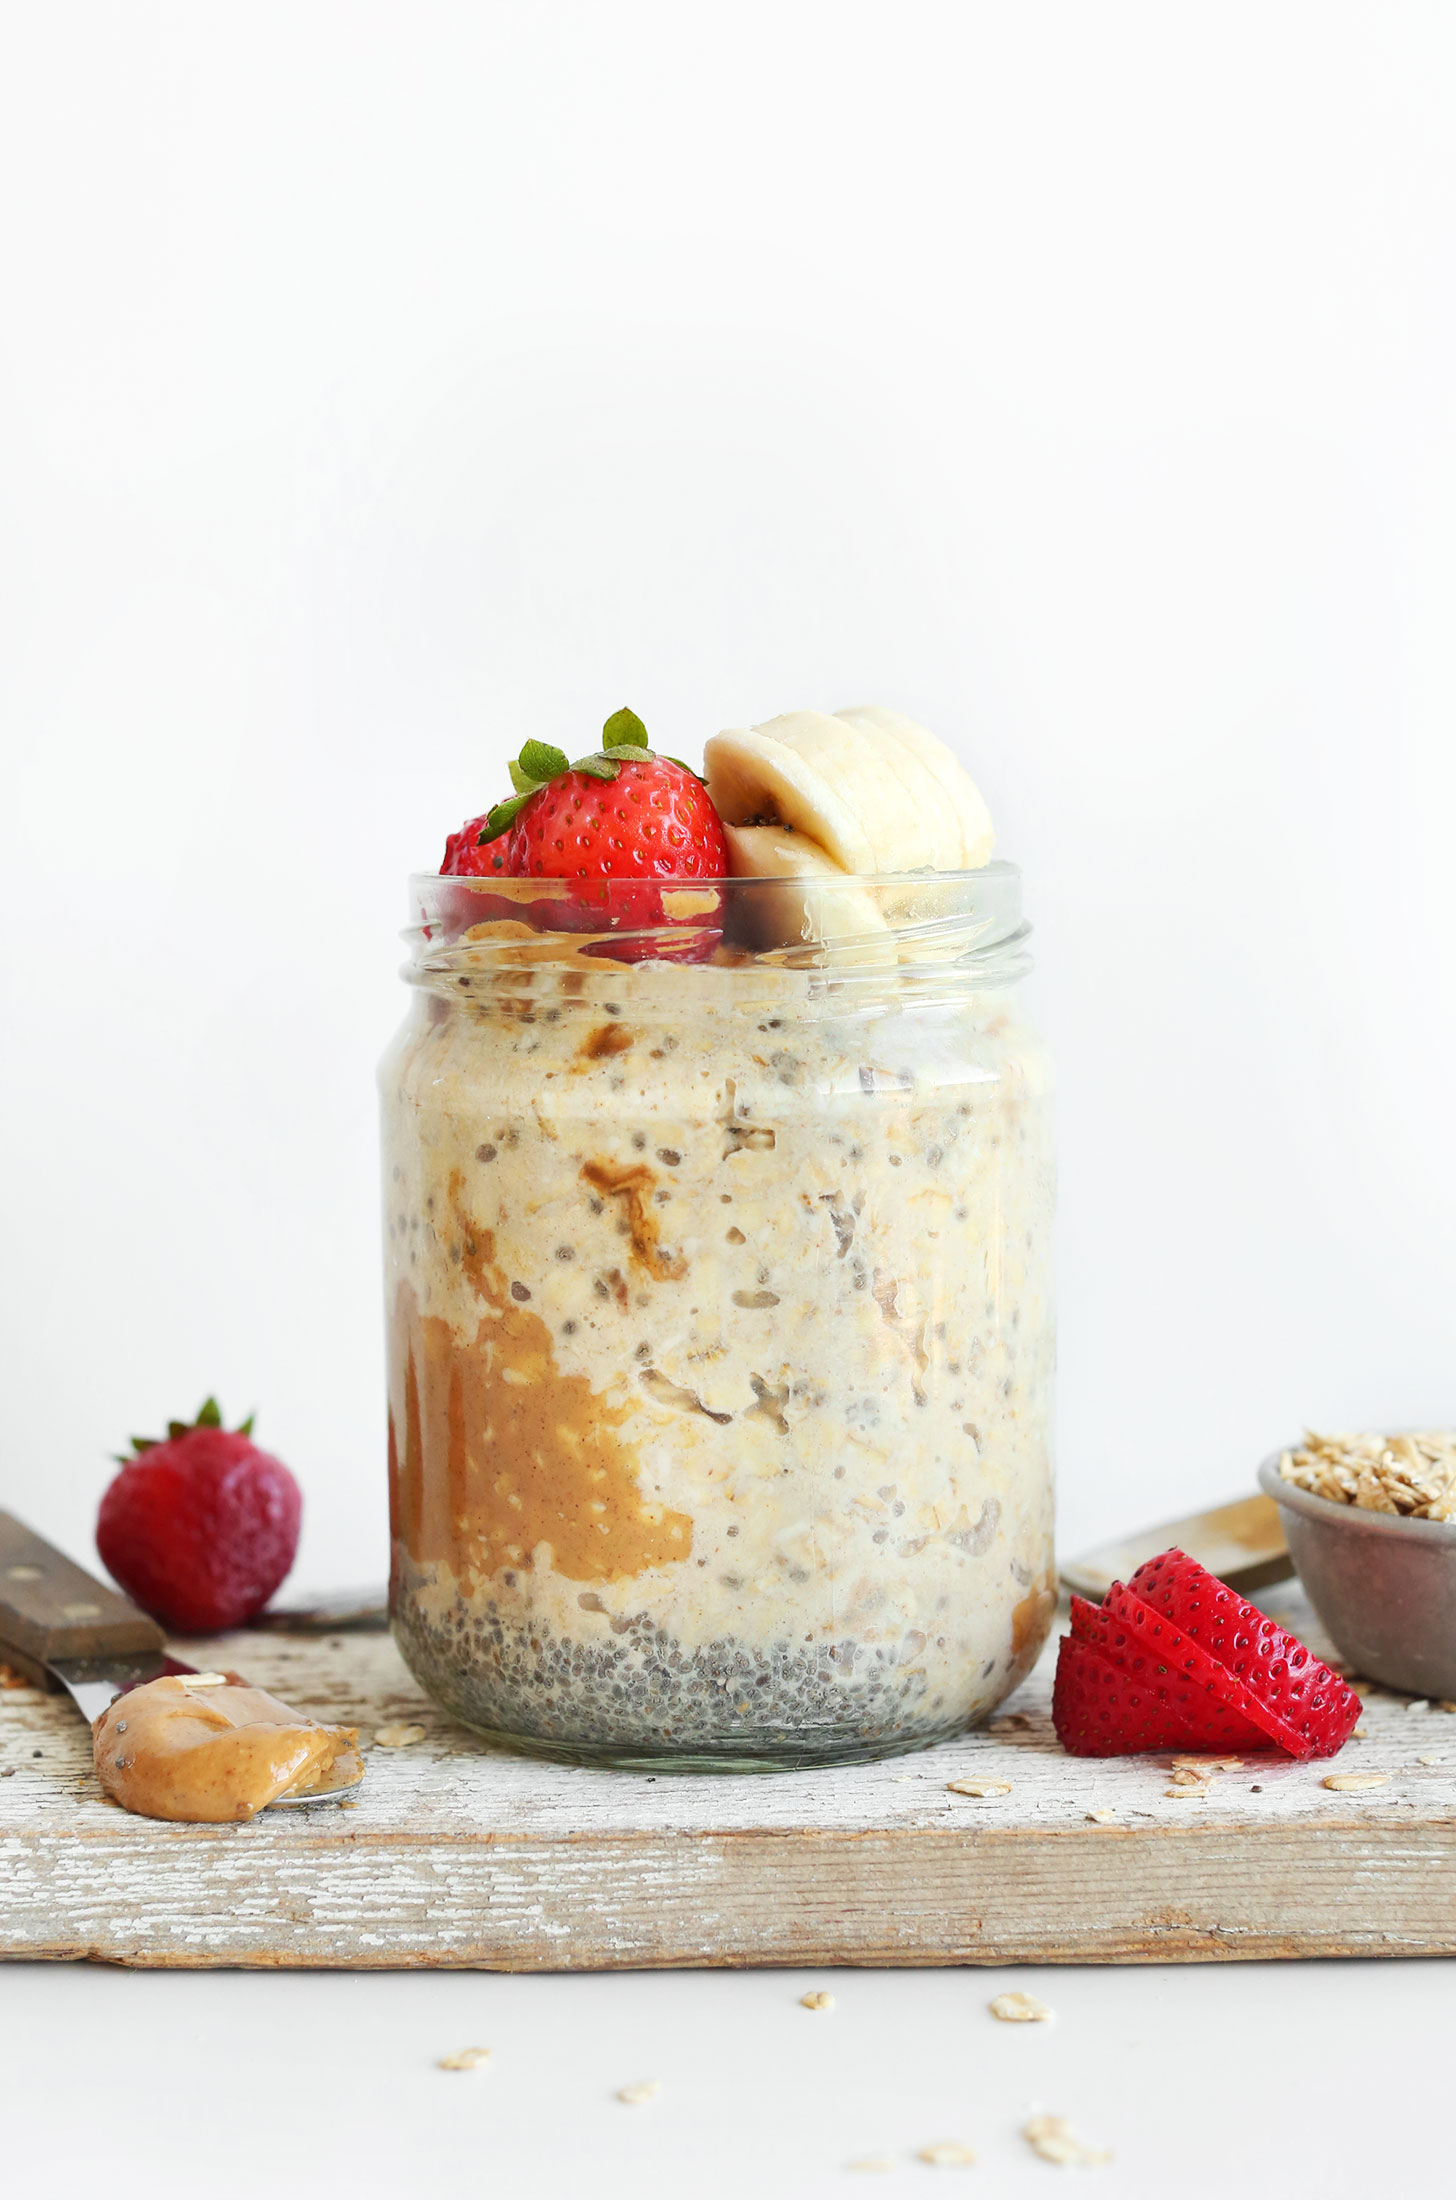 Jar of Peanut Butter Overnight Oats for a delicious vegan breakfast